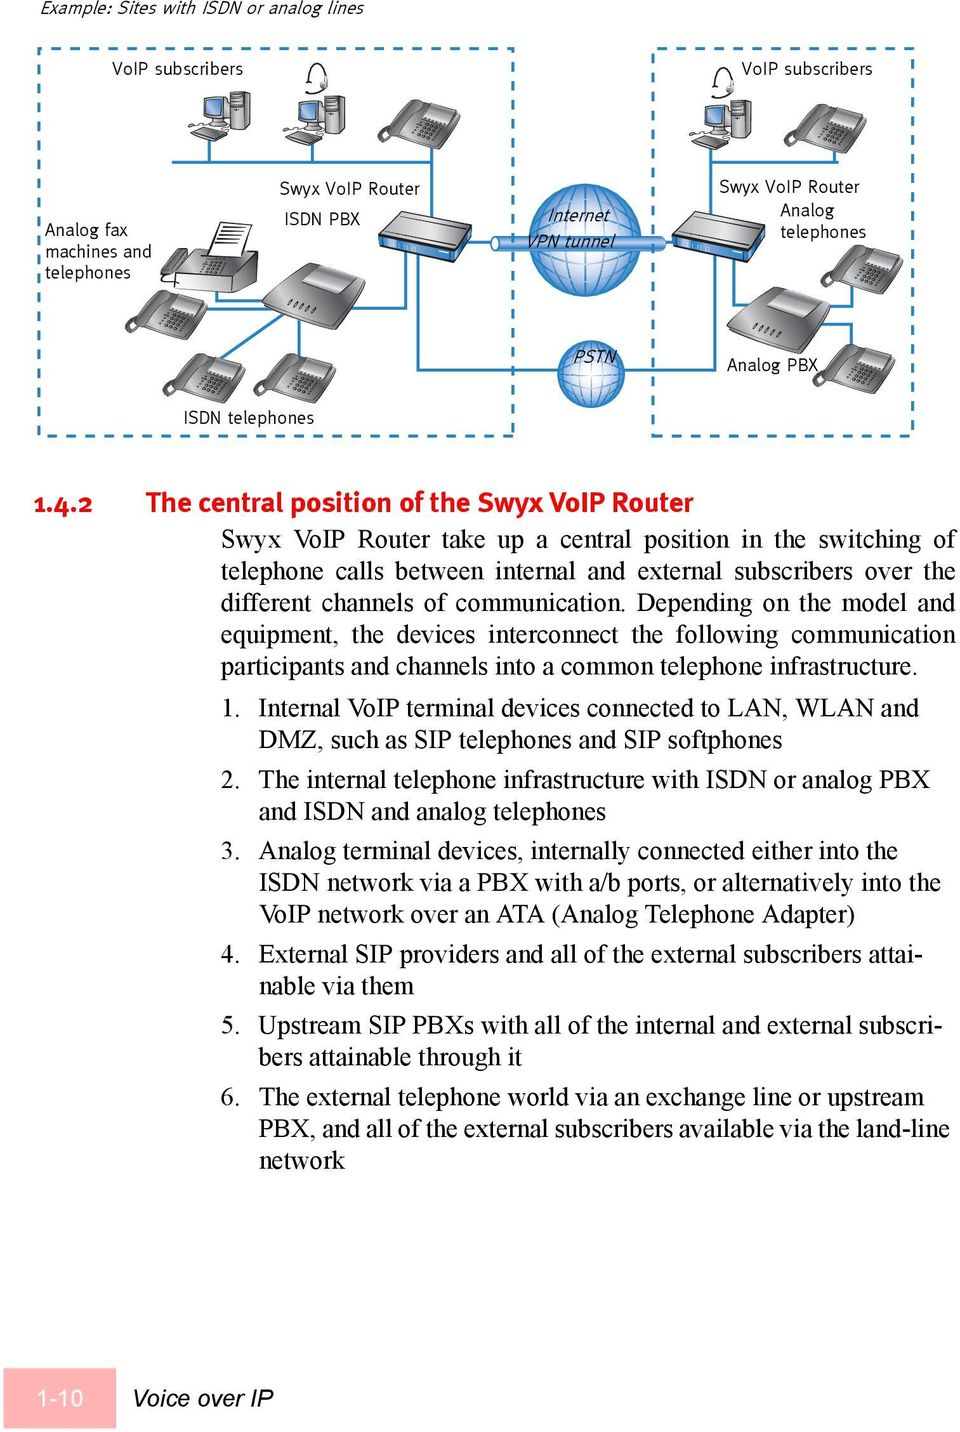 2 The central position of the Swyx VoIP Router Swyx VoIP Router take up a central position in the switching of telephone calls between internal and external subscribers over the different channels of